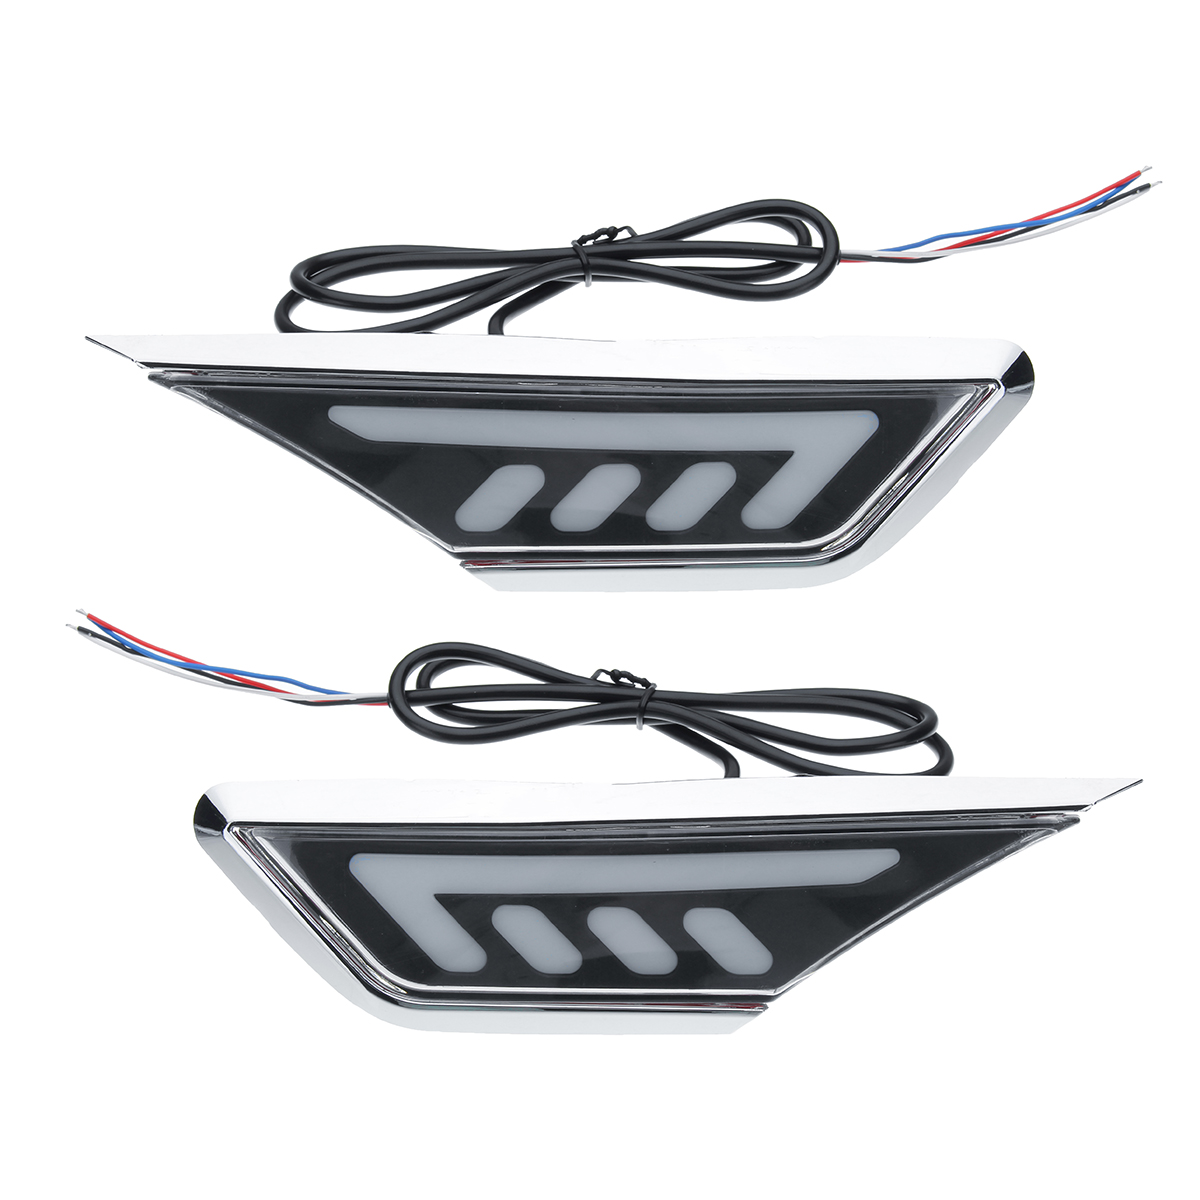 2pcs Yellow White LED Car Leaf Board Side Marker Lights Lamps for Honda Civic 10th 16-17